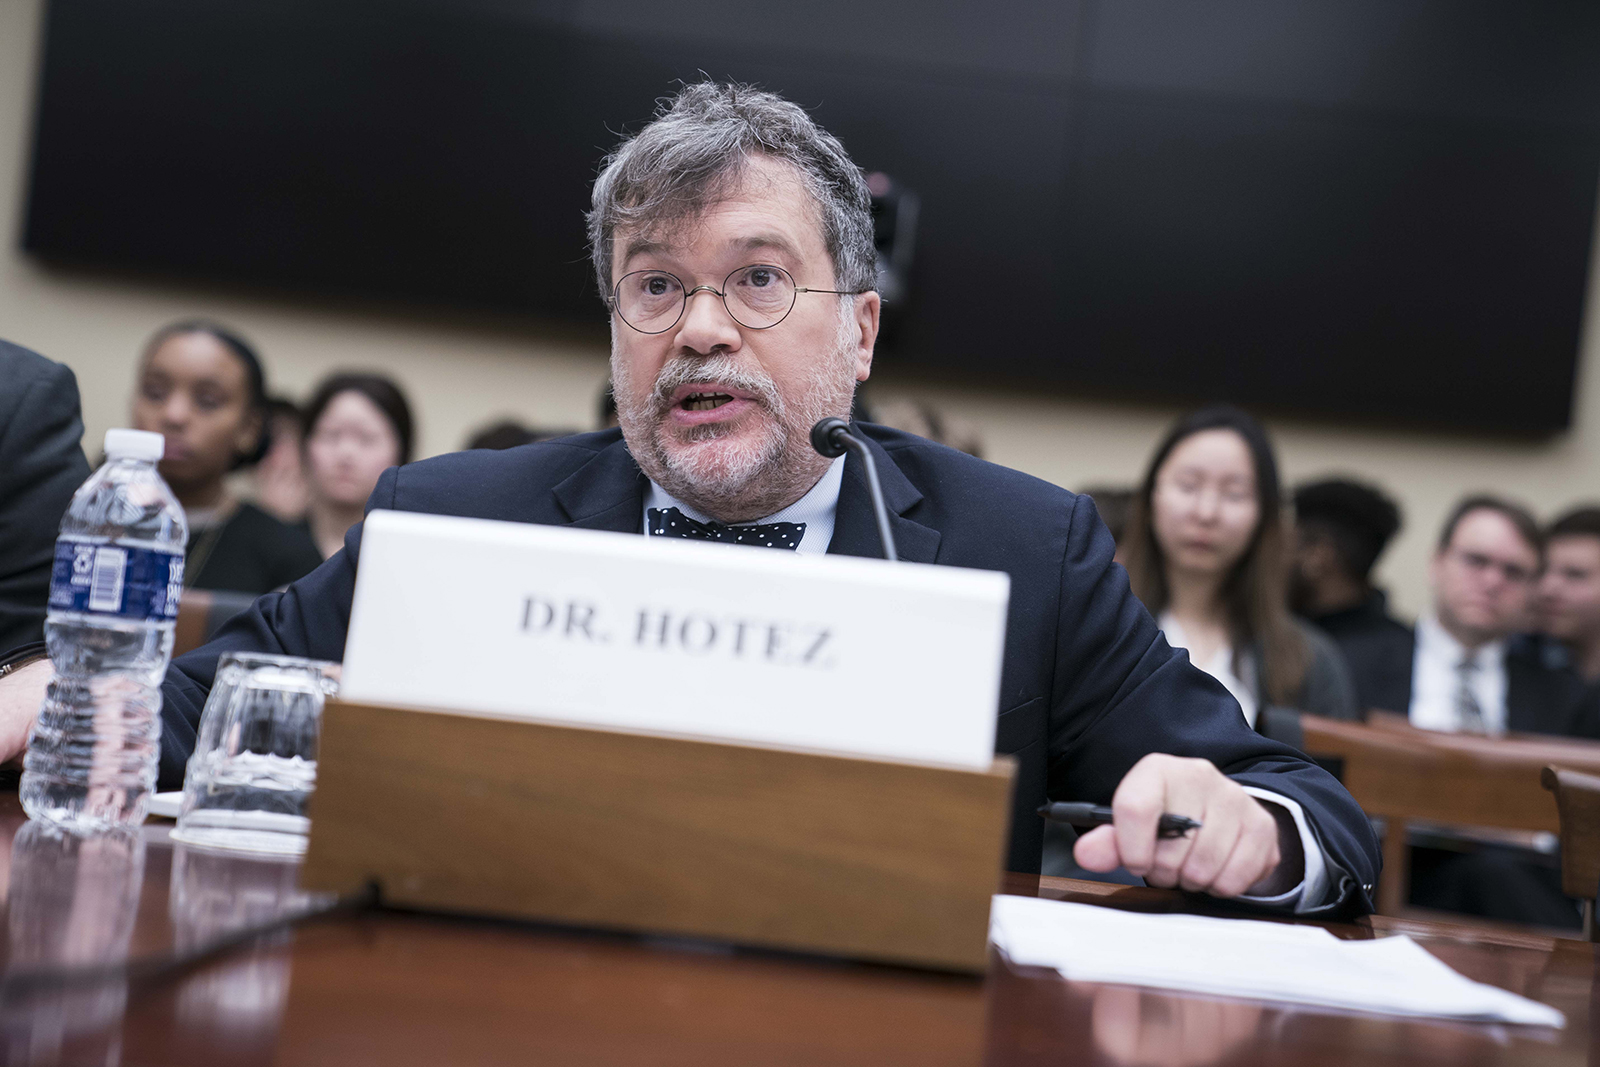 Dr. Peter Hotez, founding dean of the Baylor College of Medicine National School of Tropical Medicine, speaksduring a House Science, Space and Technology Committee hearing on Capitol Hill in Washington, DC, on March 5, 2020.